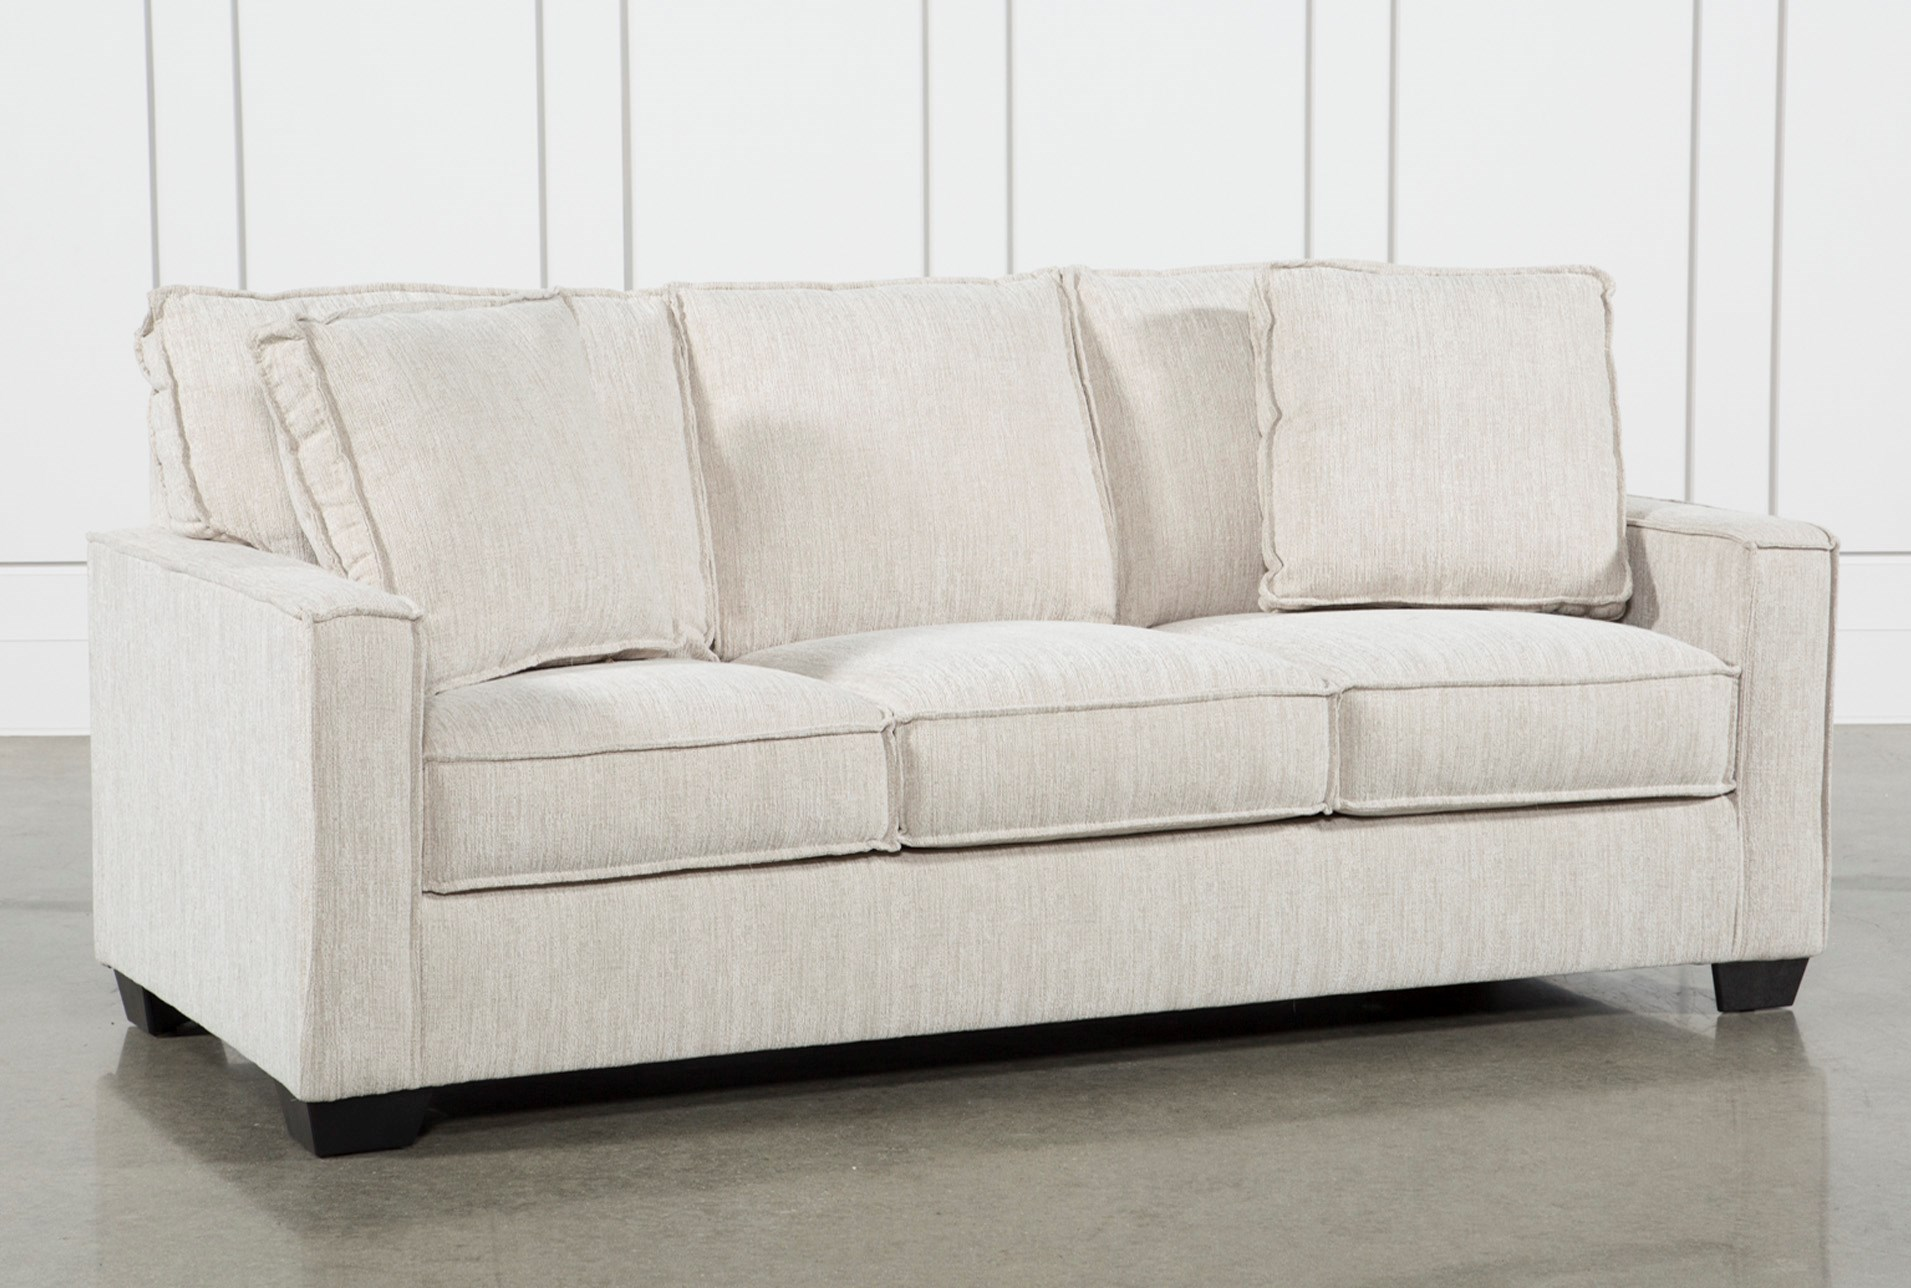 Escondido Queen Sofa Sleeper Qty 1 Has Been Successfully Added To Your Cart